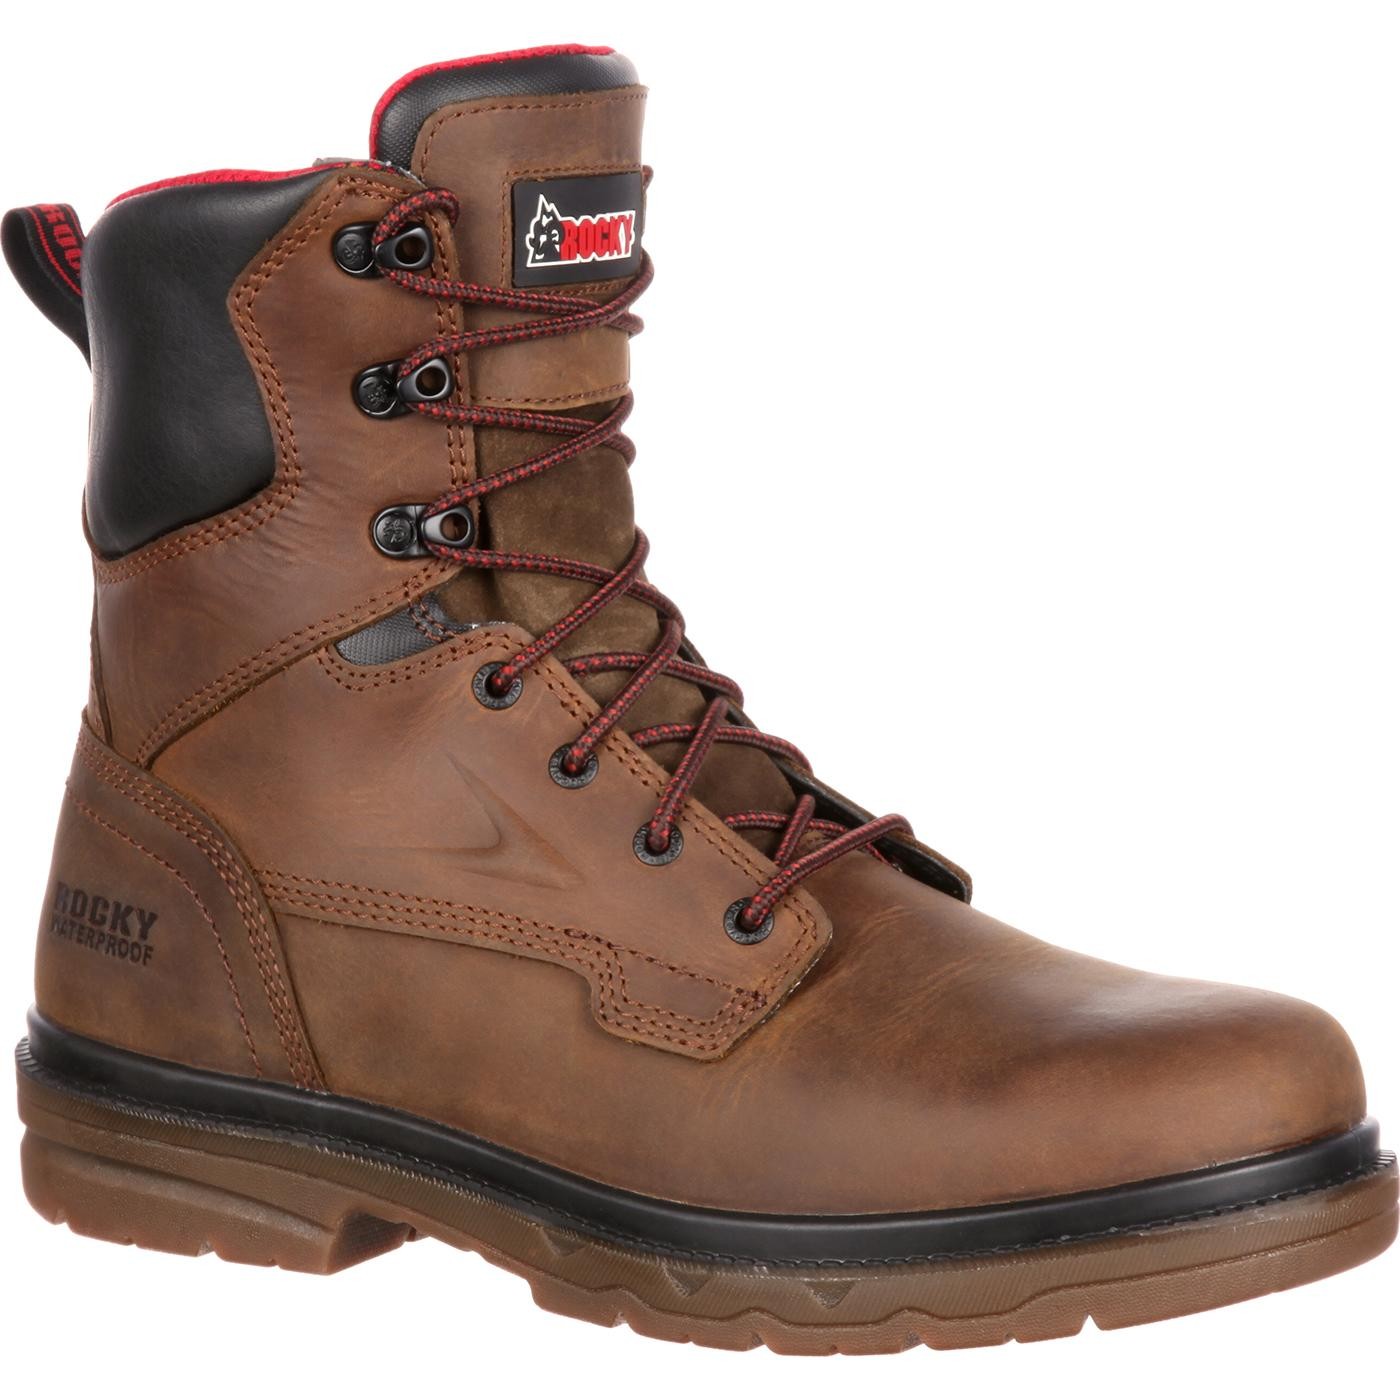 Rocky Elements Shale Men's Steel Toe Waterproof Work Boot